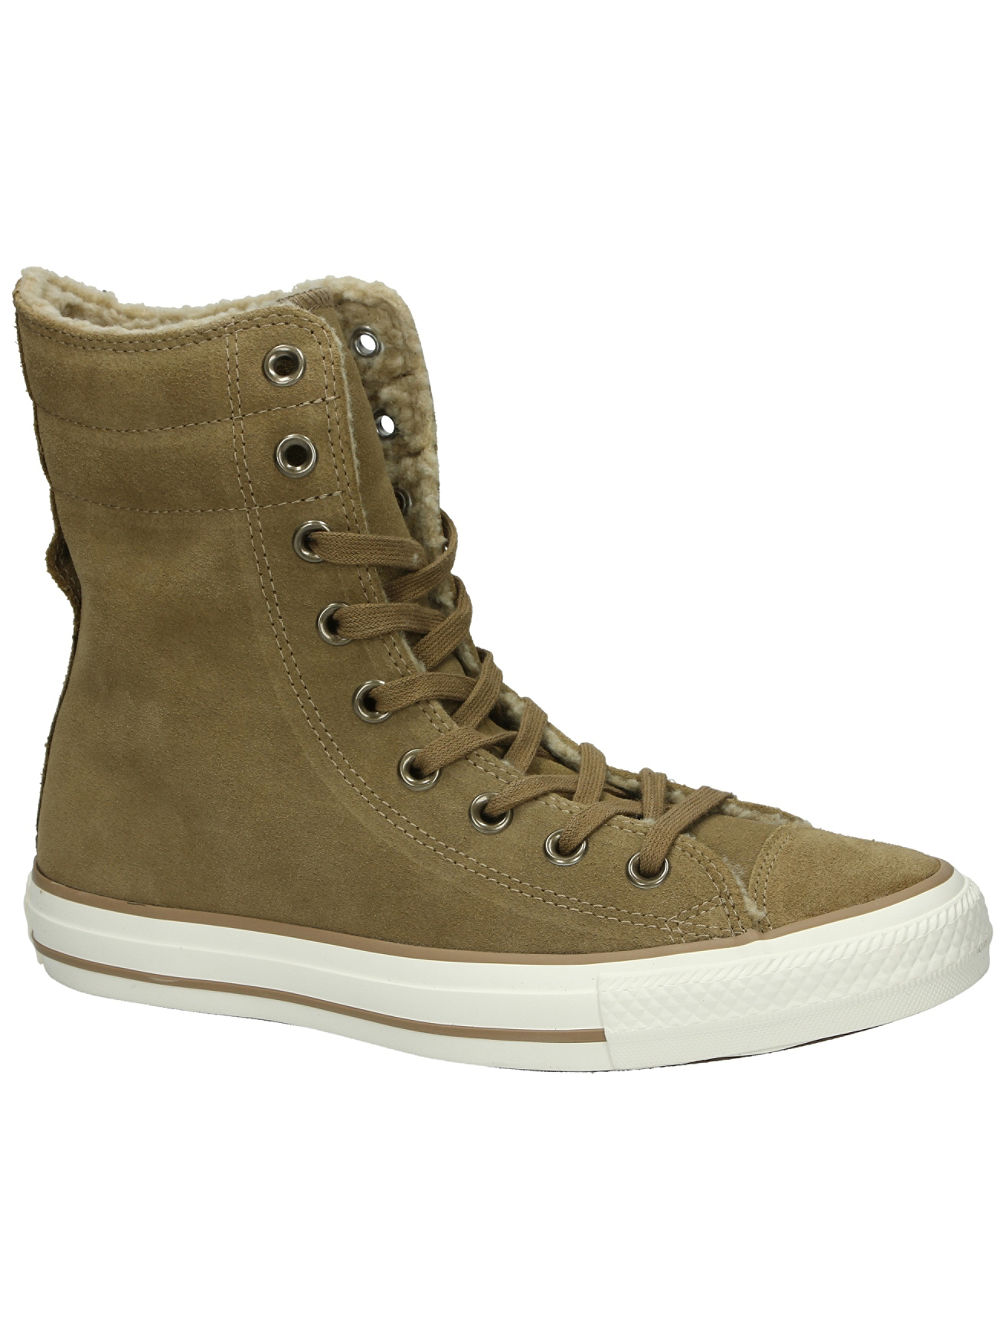 converse-chuck-taylor-all-star-hi-rise-sneakers-women